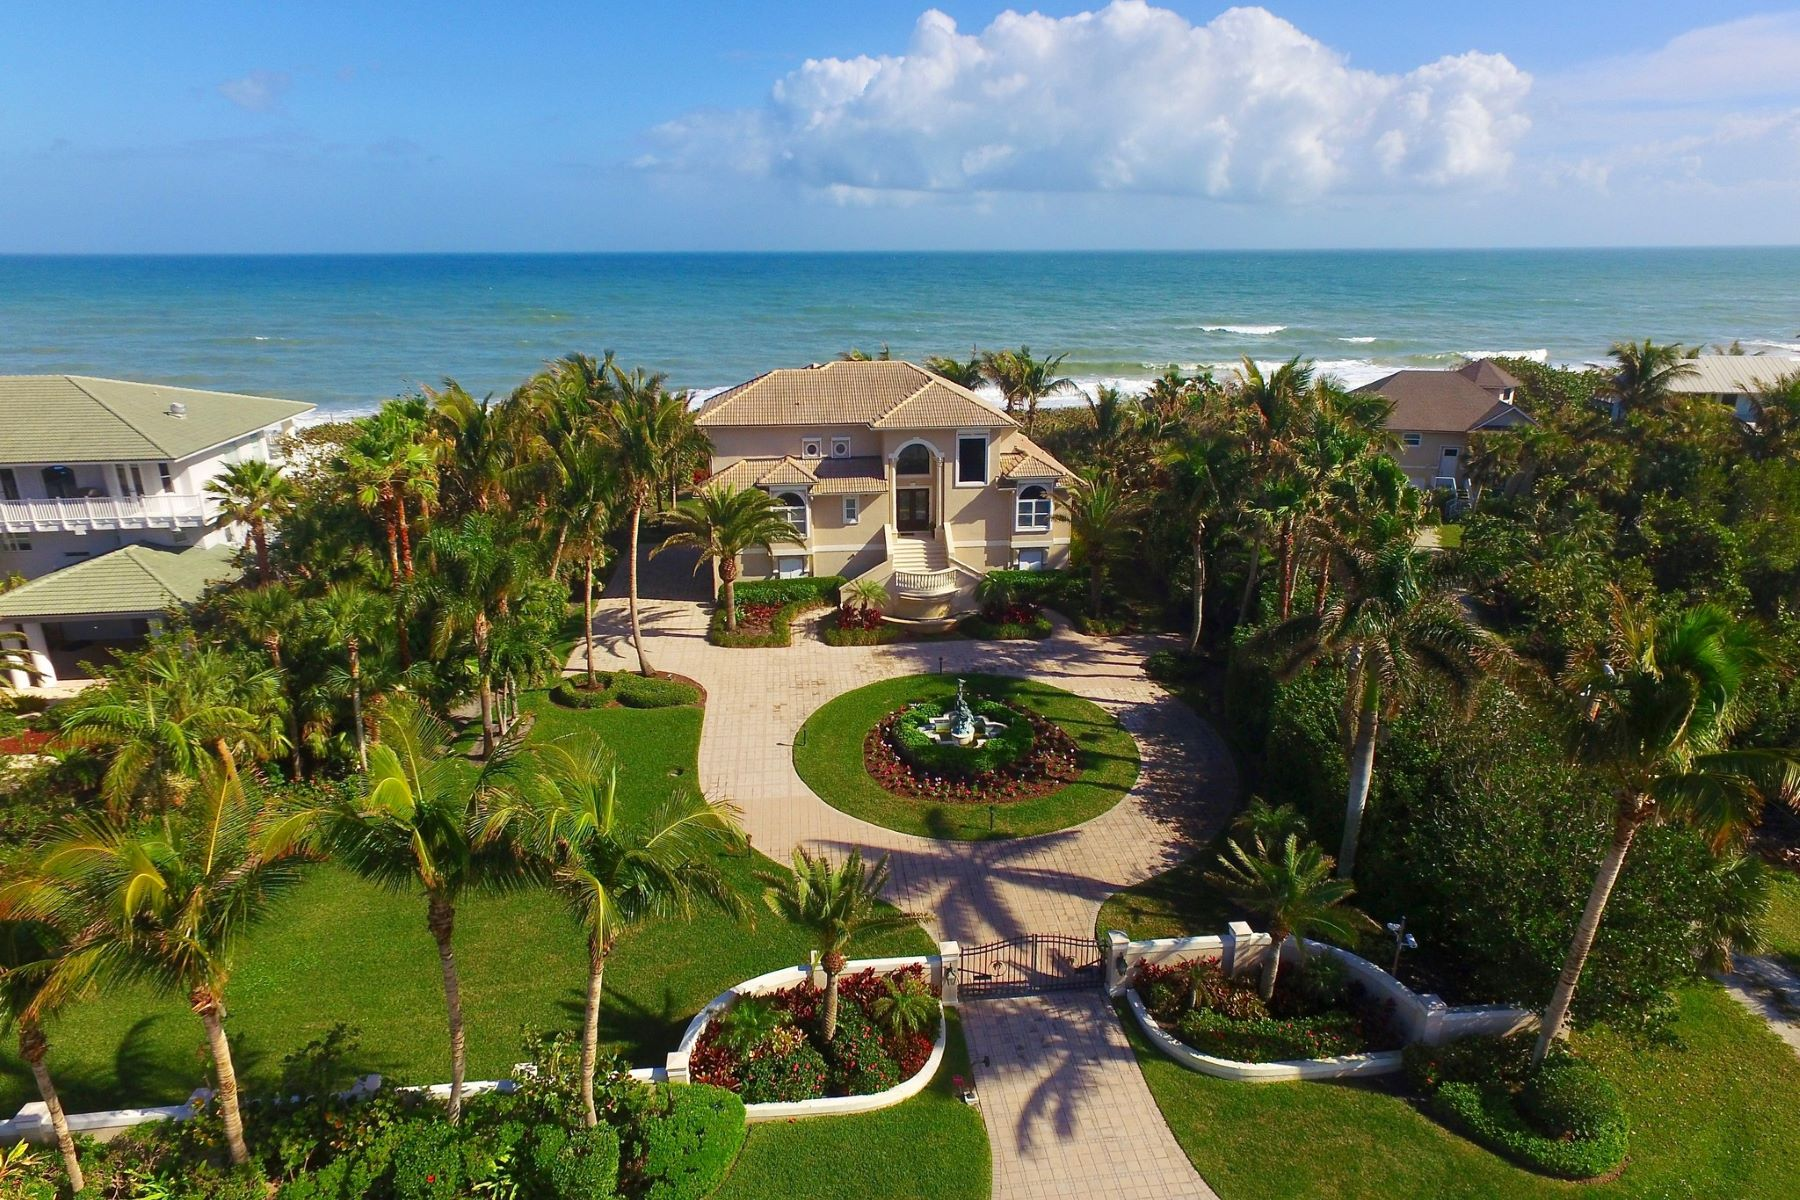 단독 가정 주택 용 매매 에 Ocean To River Gated Oceanfront Estate 12440 Highway A1A Vero Beach, 플로리다, 32963 미국